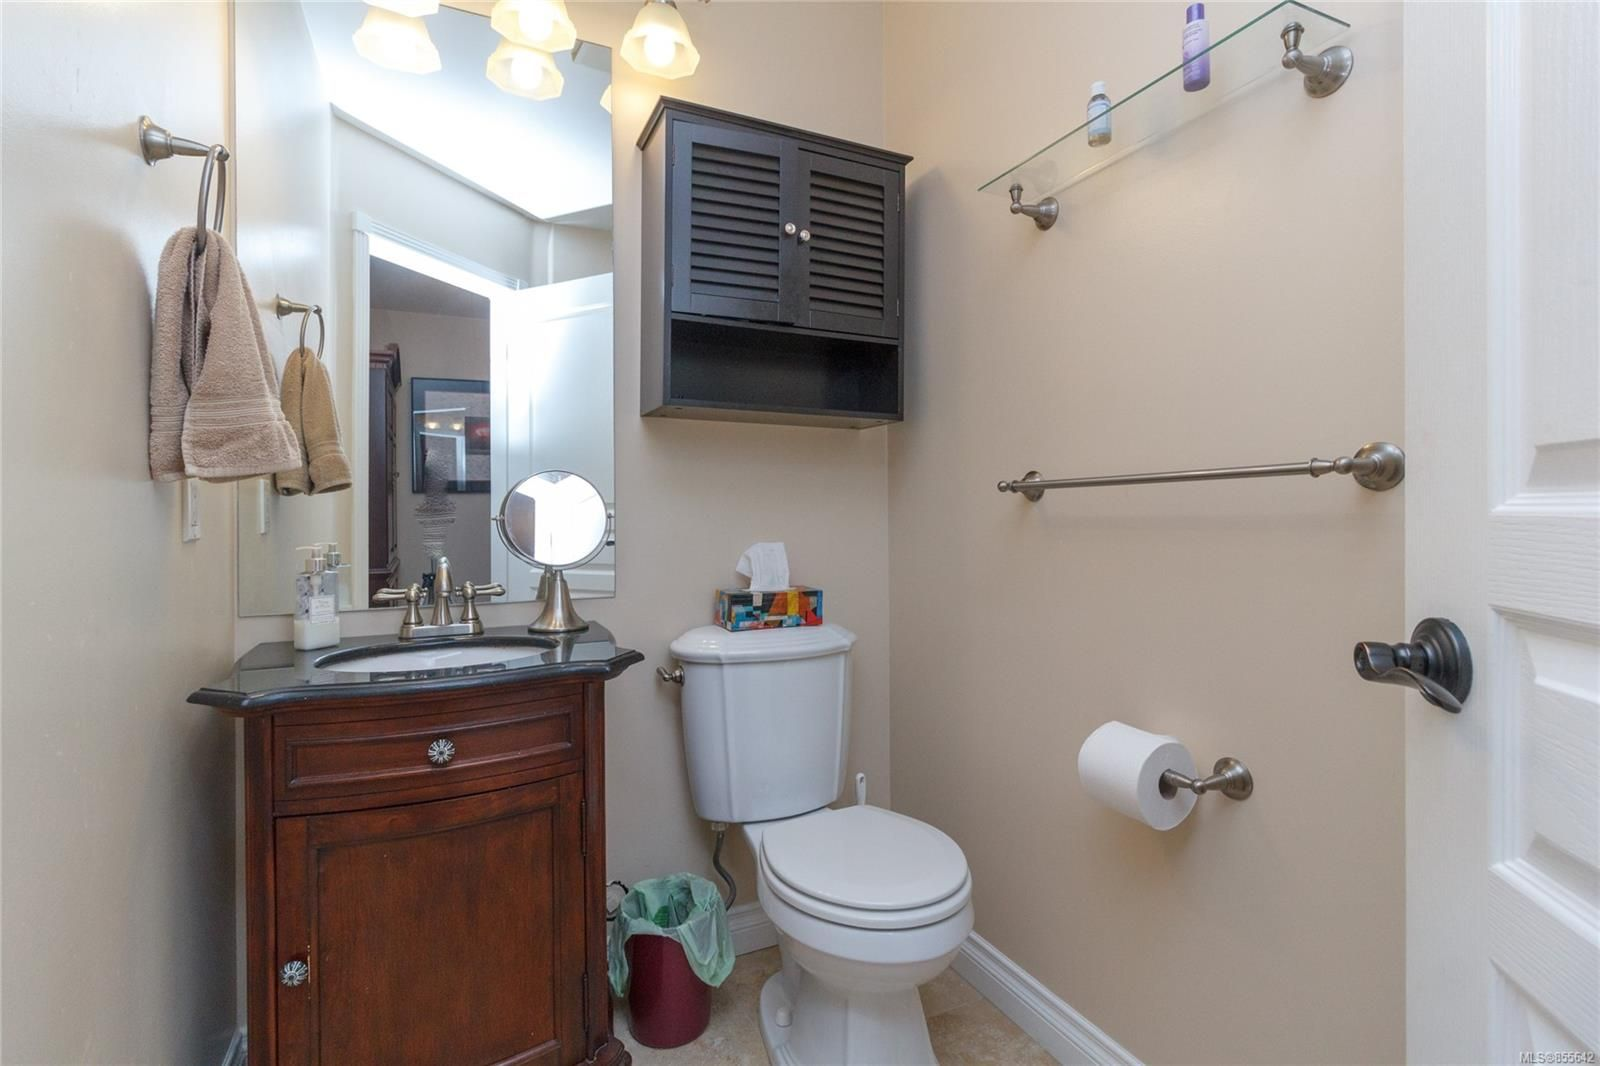 Photo 19: Photos: 52 14 Erskine Lane in : VR Hospital Row/Townhouse for sale (View Royal)  : MLS®# 855642